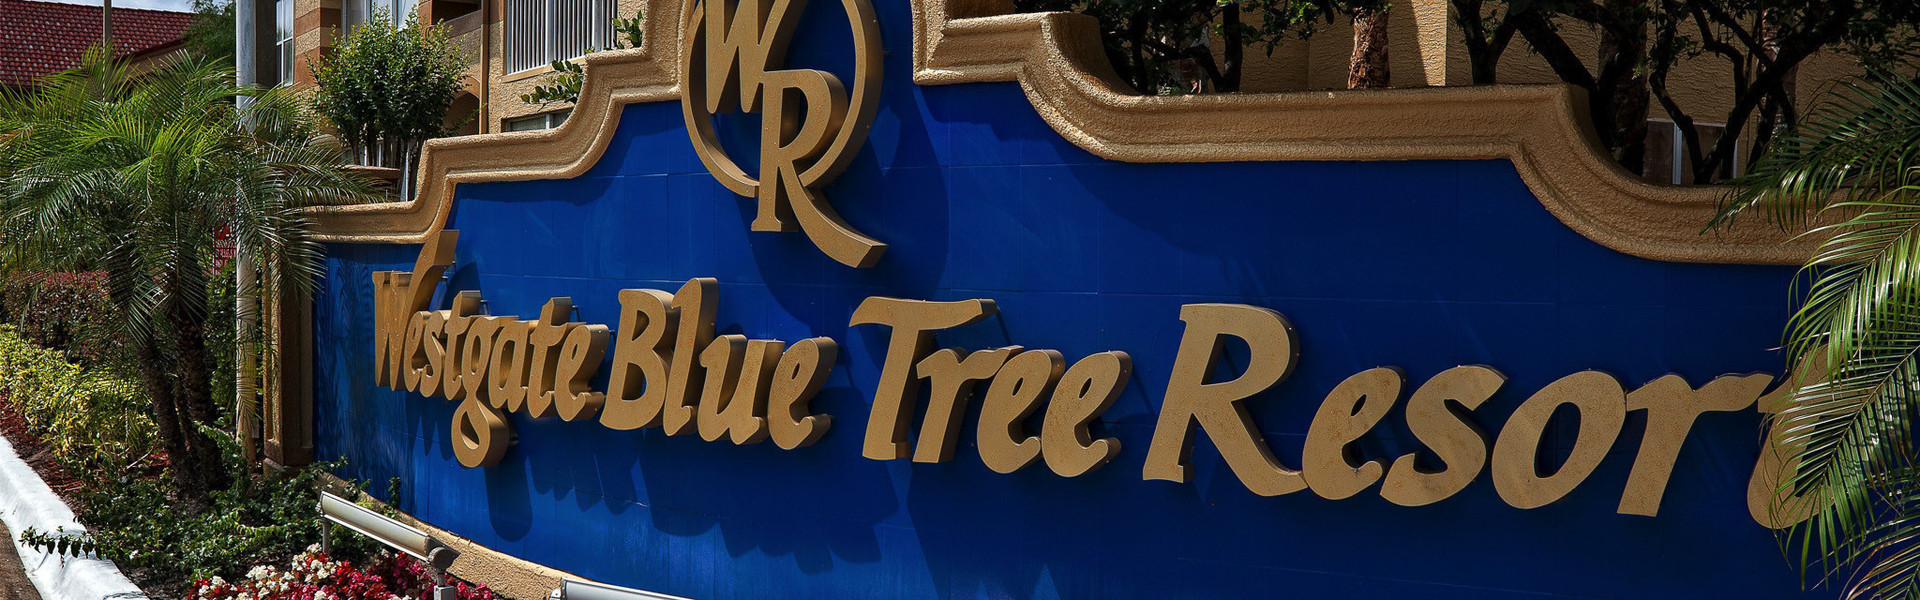 Entrance For Group Bookings & Family Reunions | Group Booking Rates at Westgate Blue Tree Resort | Meeting Space in Orlando Florida 32836